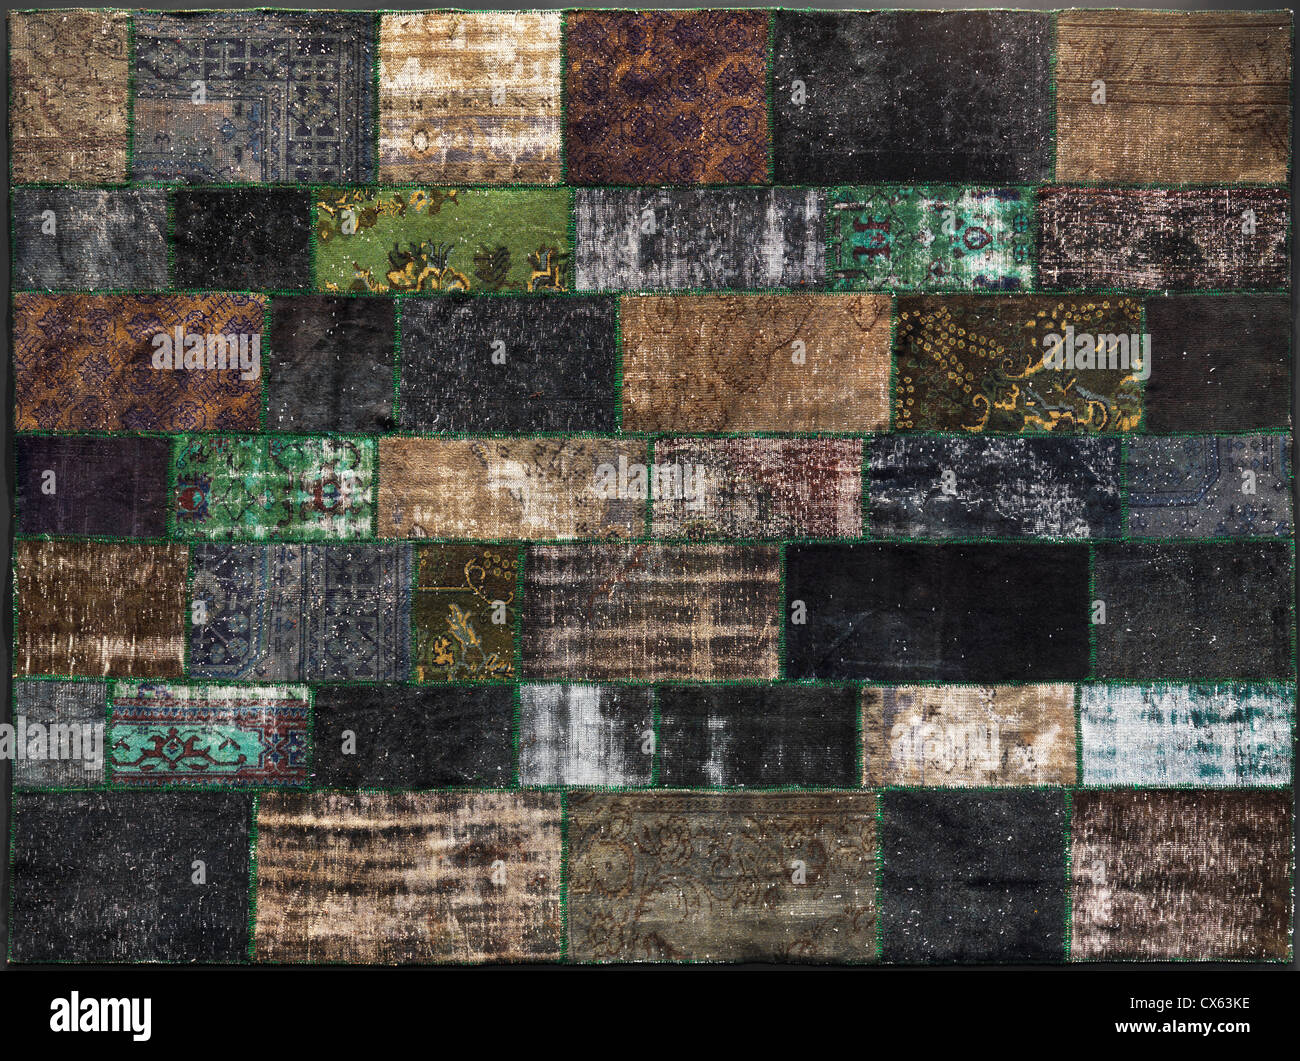 Carpet made of colorful patches of recycled vintage rugs - Stock Image